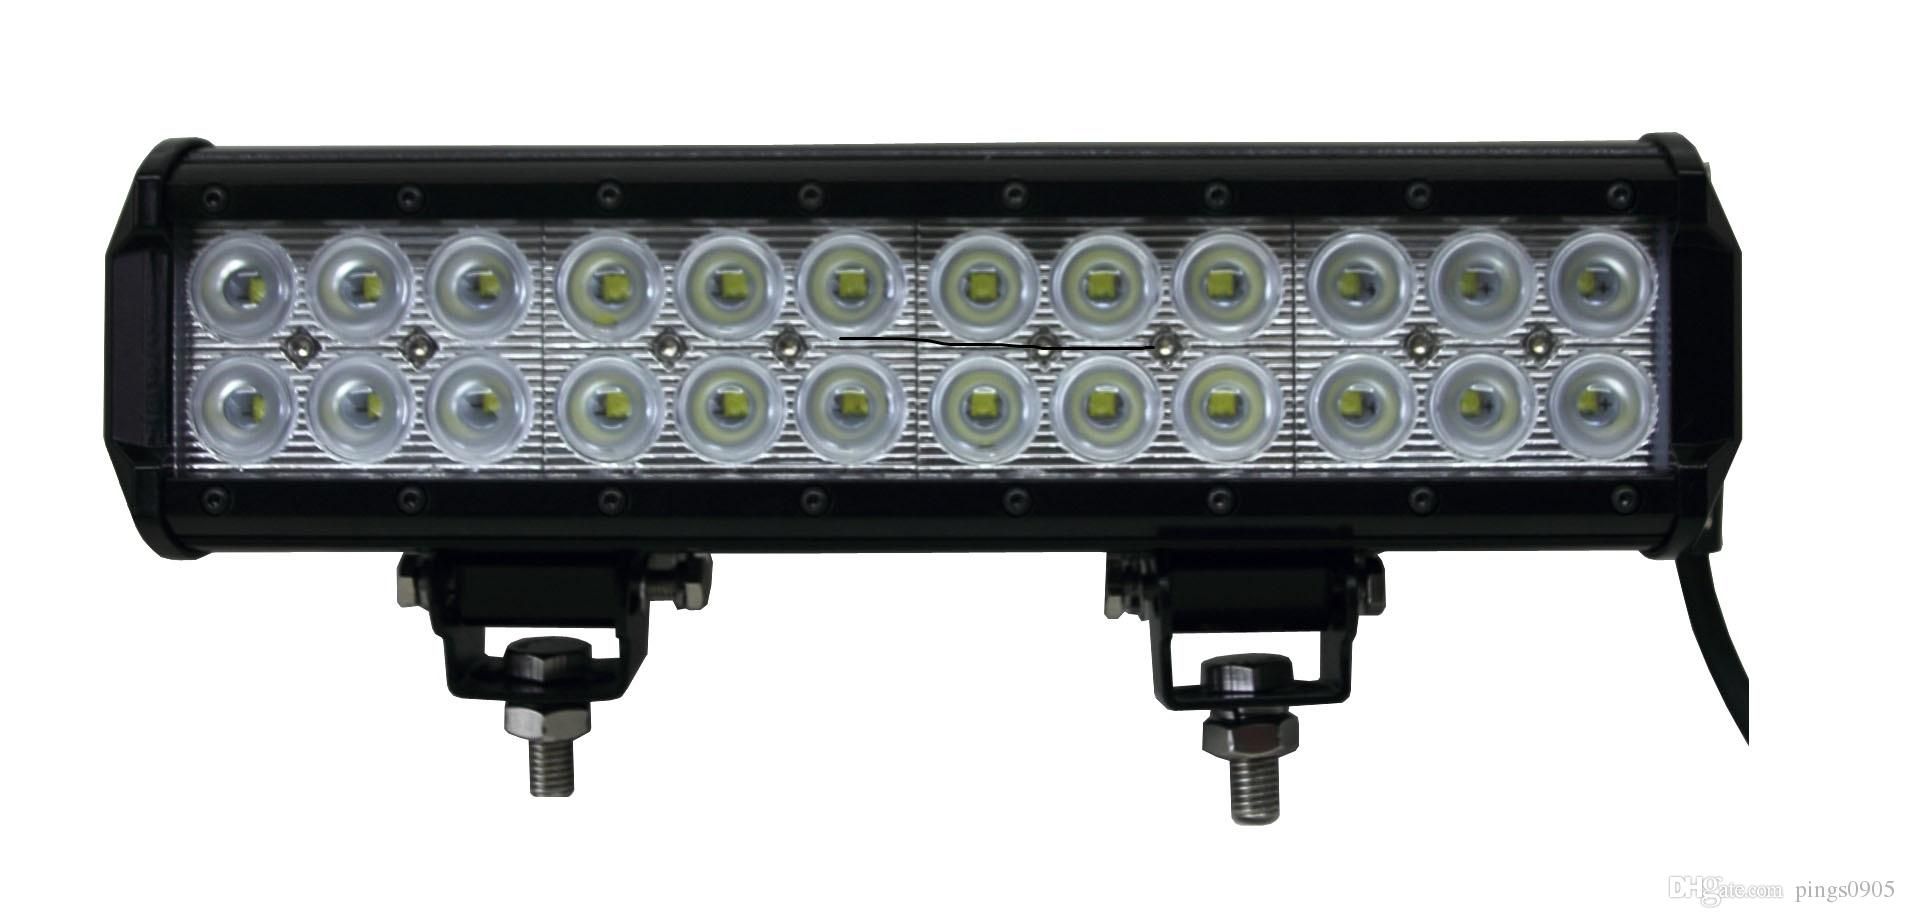 12 inch 72w dual row led light bar led lights for cars fog light led 12 inch 72w dual row led light bar led lights for cars fog light led 12v flood light 12 volt led work lights 12v led work light 12 volt led flood lights aloadofball Gallery